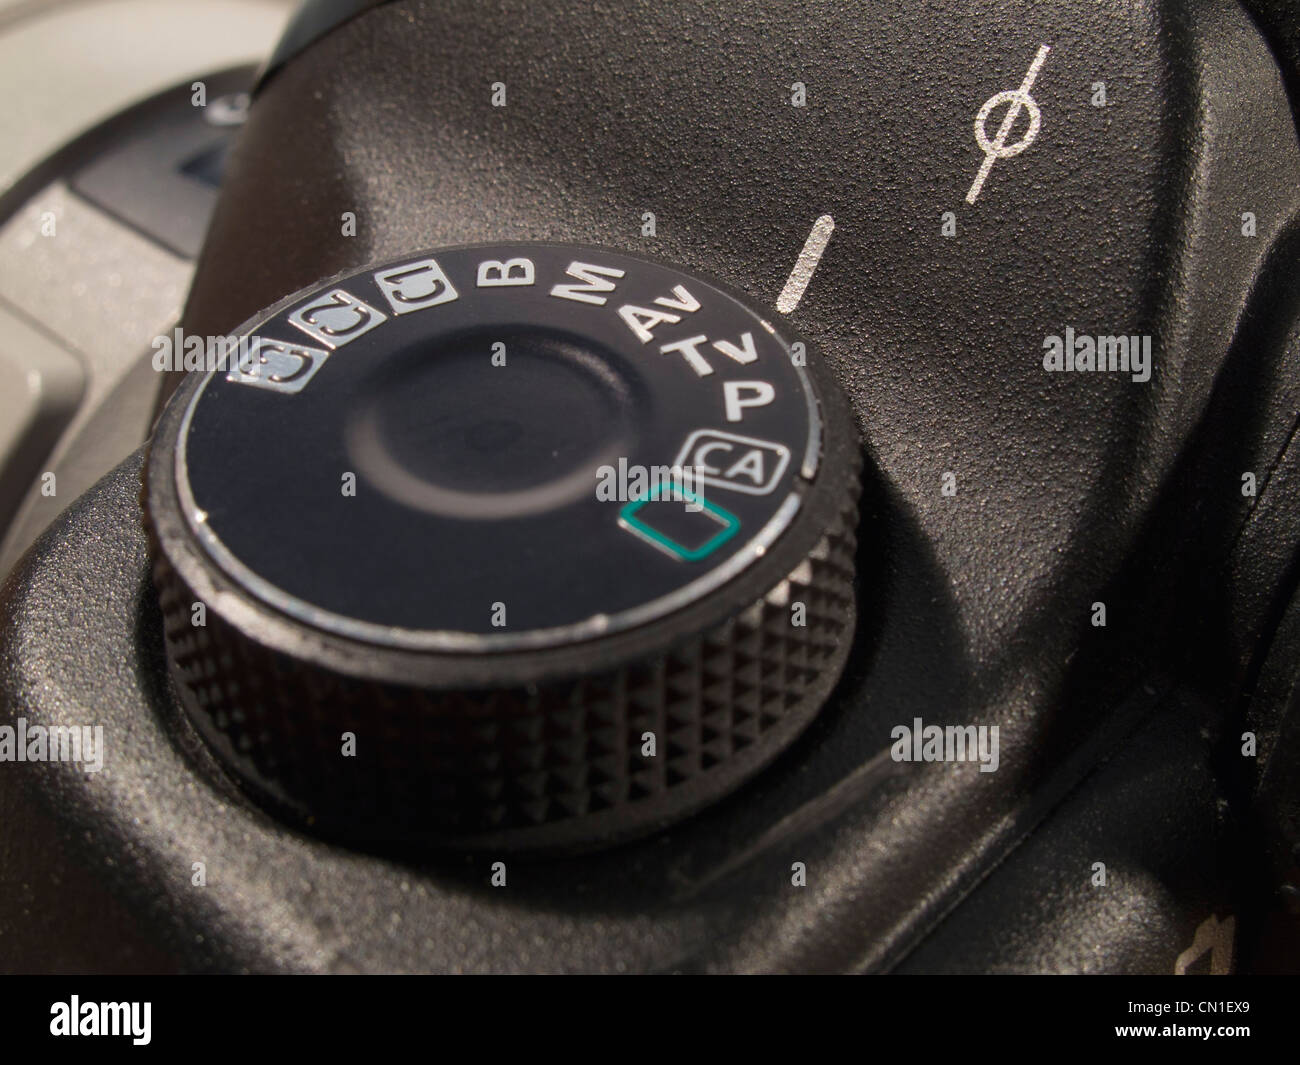 Mode dial controlling exposure modes on a Canon EOS 5D Mk II digital camera - Stock Image